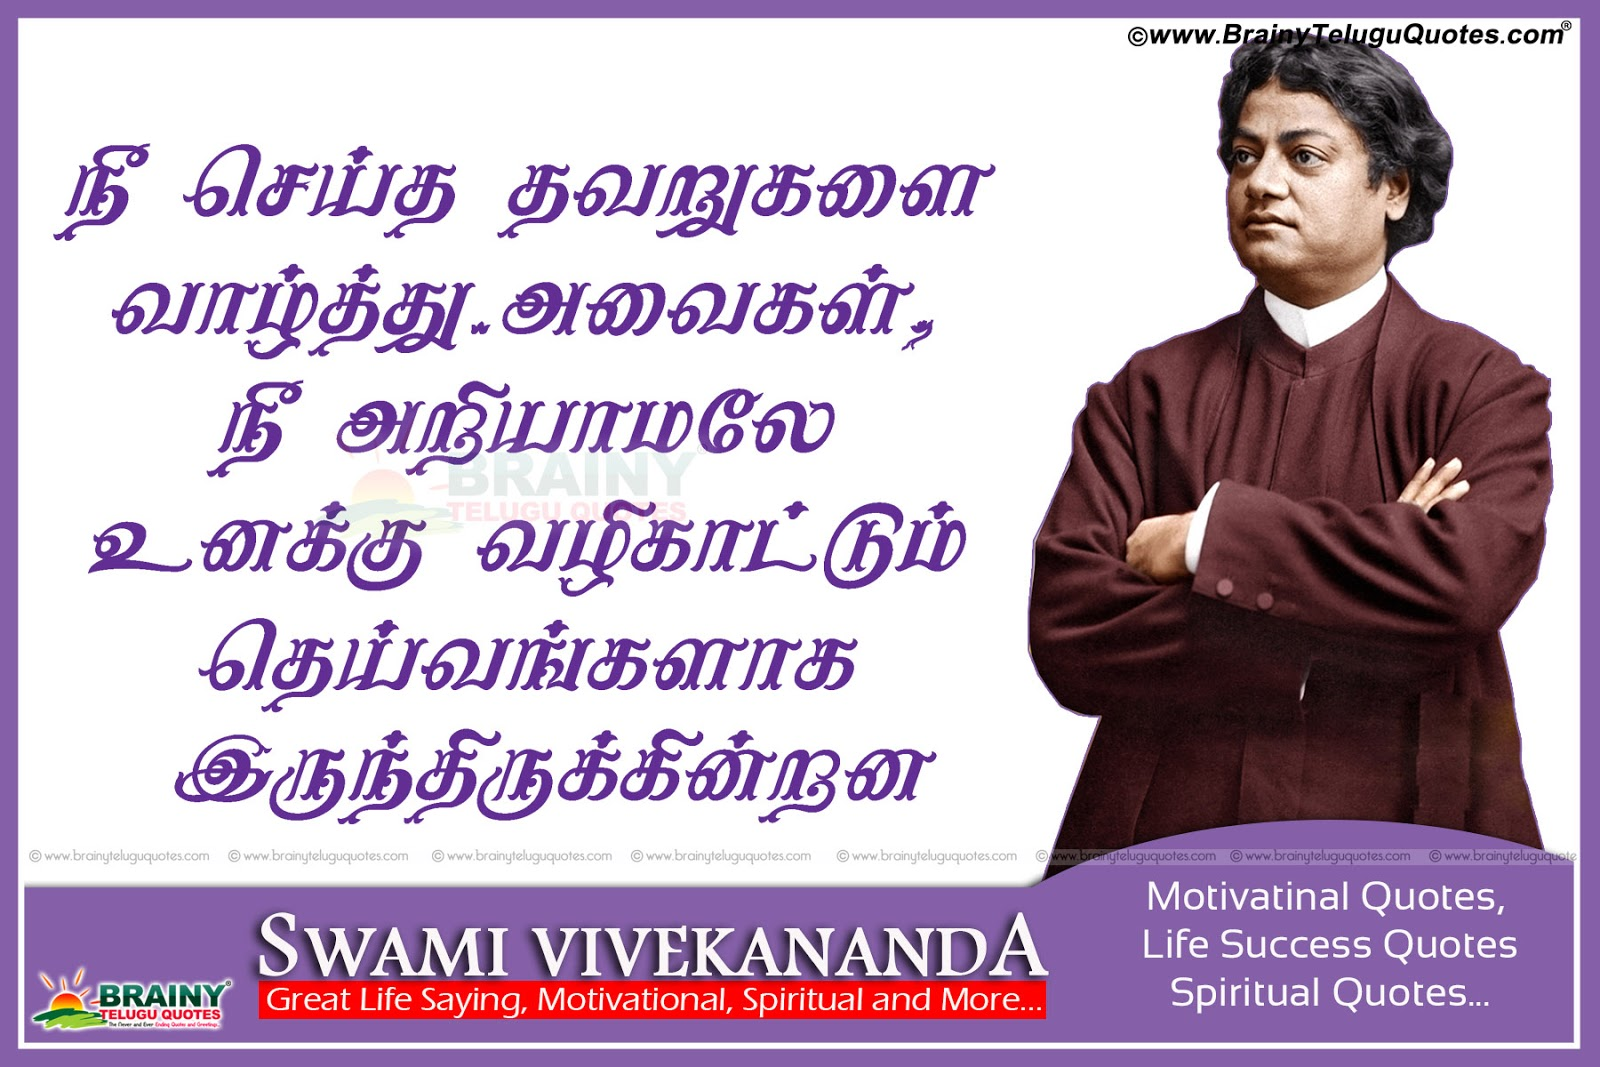 swami vivekananda on youth Swami vivekananda youth movement engage with us email info@svymorgin we want that education by which character is formed, strength of mind is increased, the intellect is expanded and by which one can stand on one's own feet - swami vivekananda numbers reached the program reach.